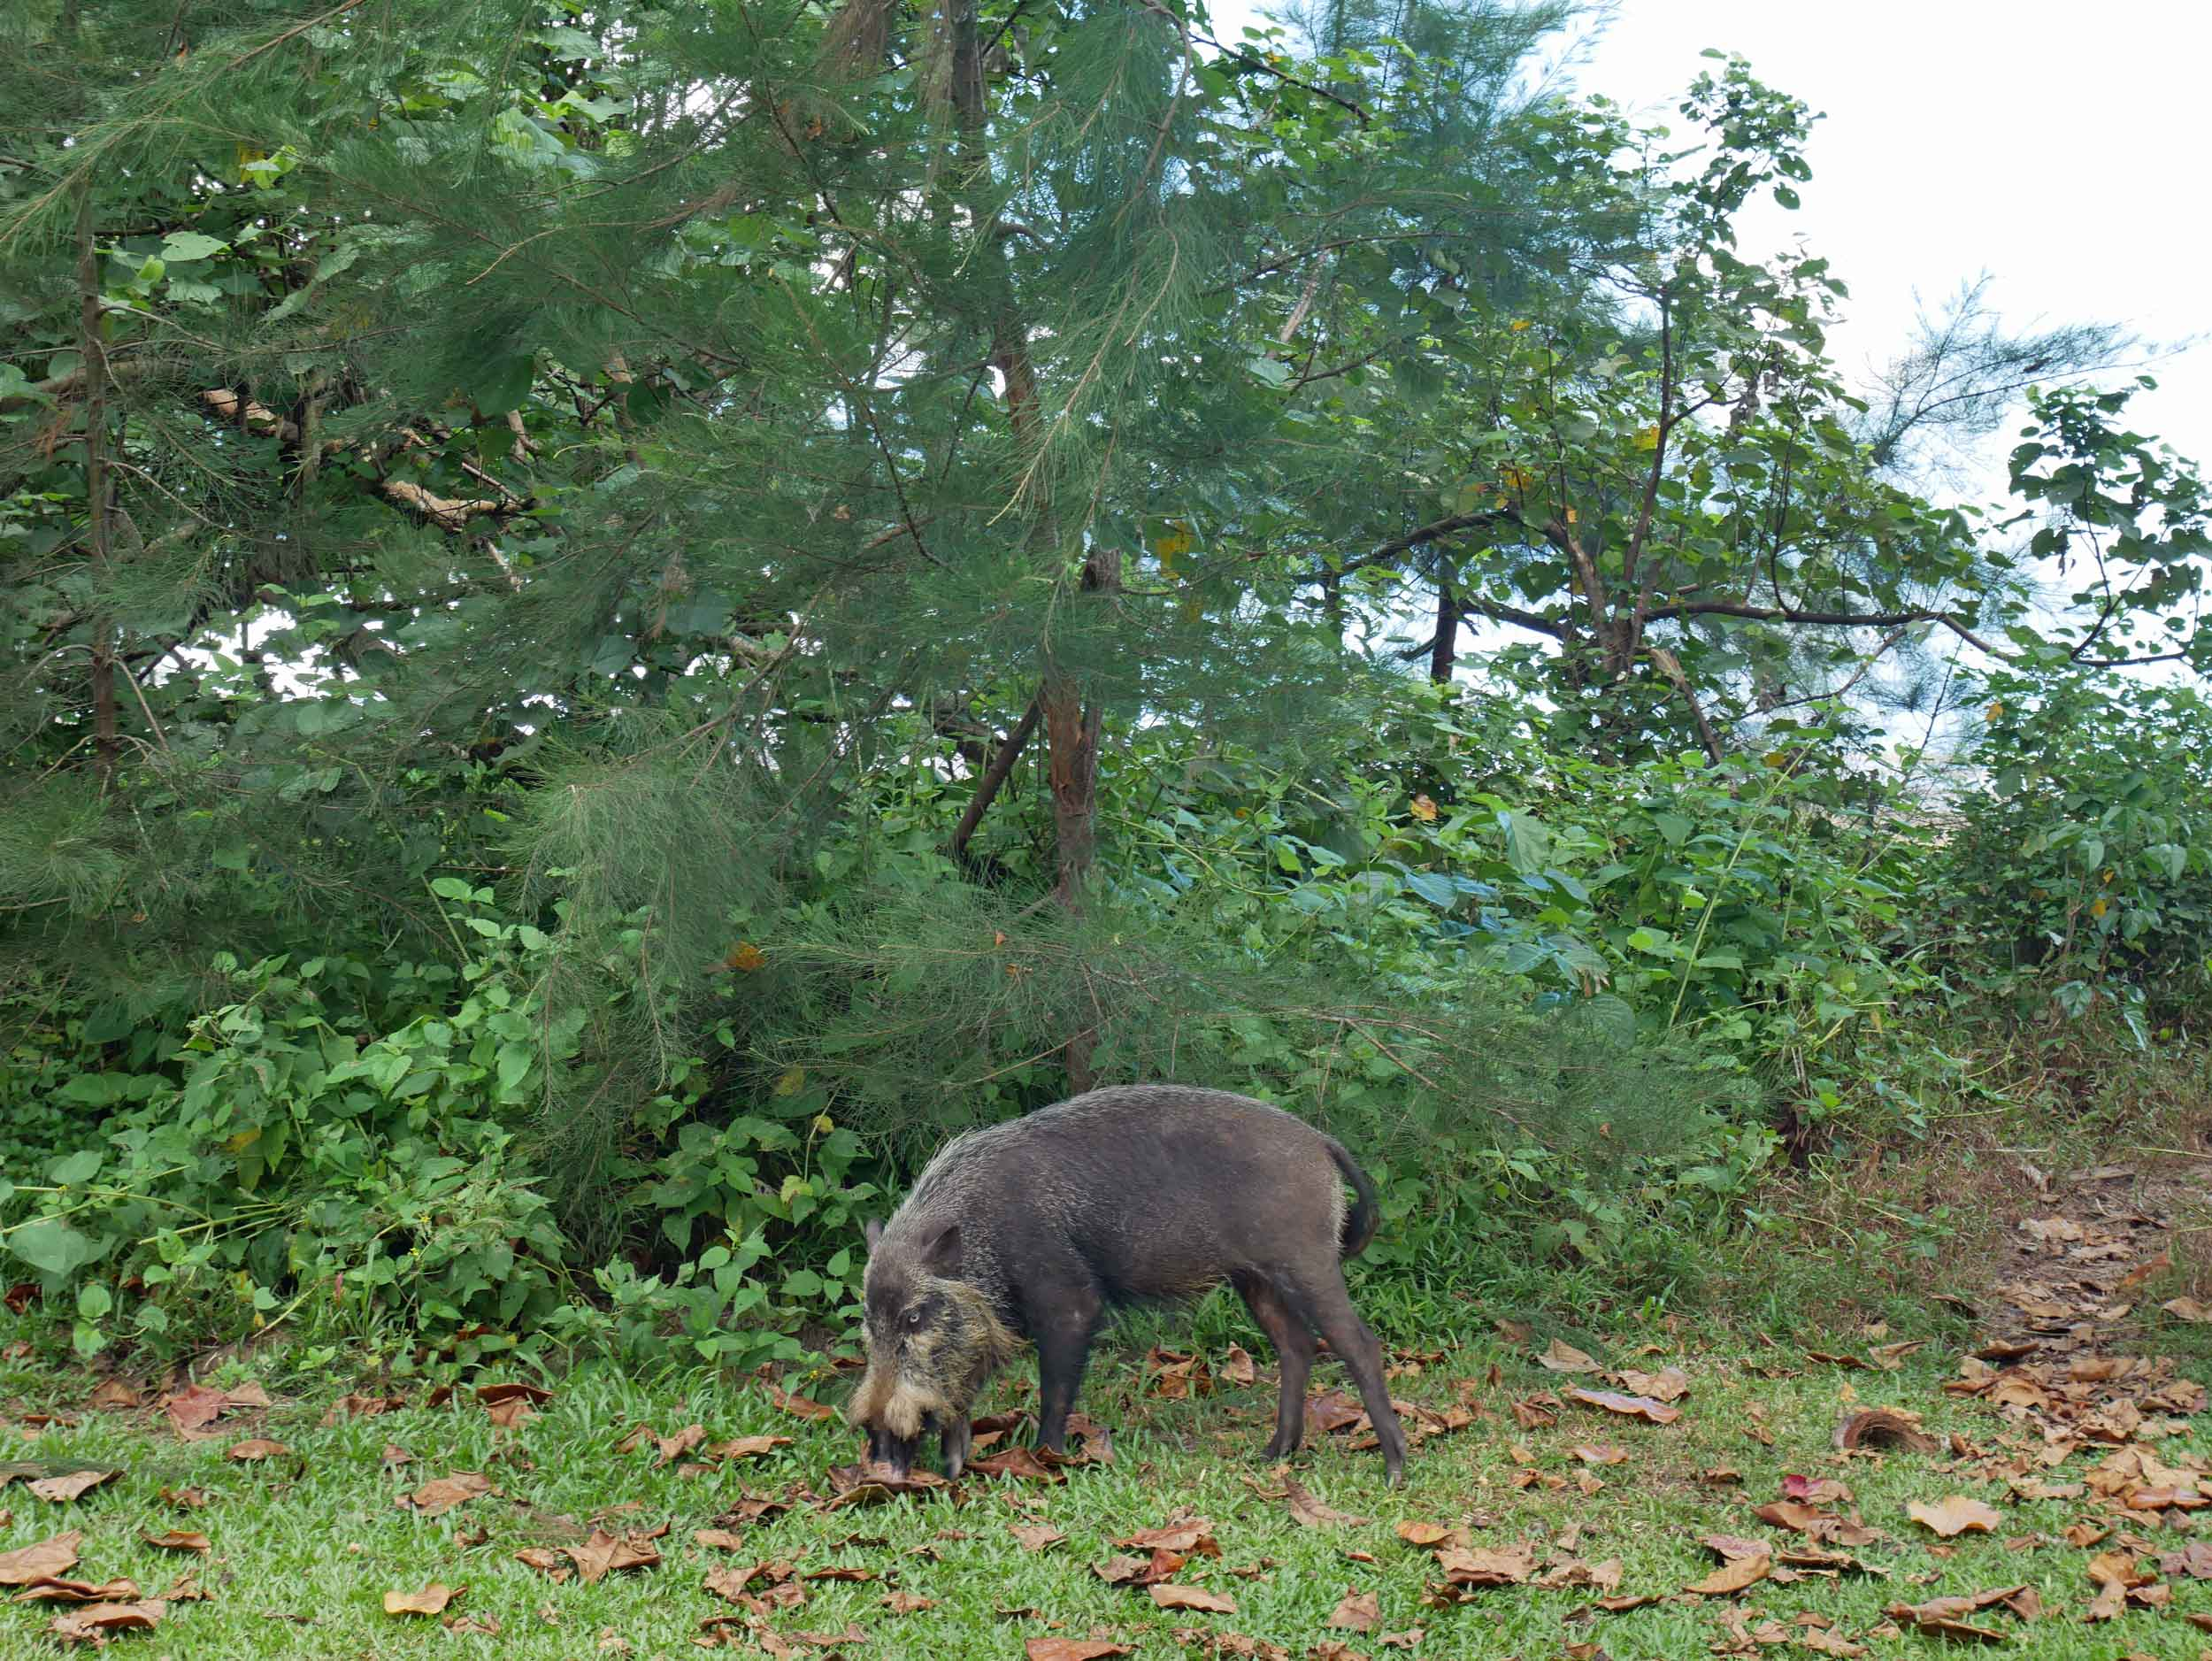 Right away, we were greeted by a Bornean bearded pig, which is so thin, compared to our pigs, that it almost seemed to be in 2-D.